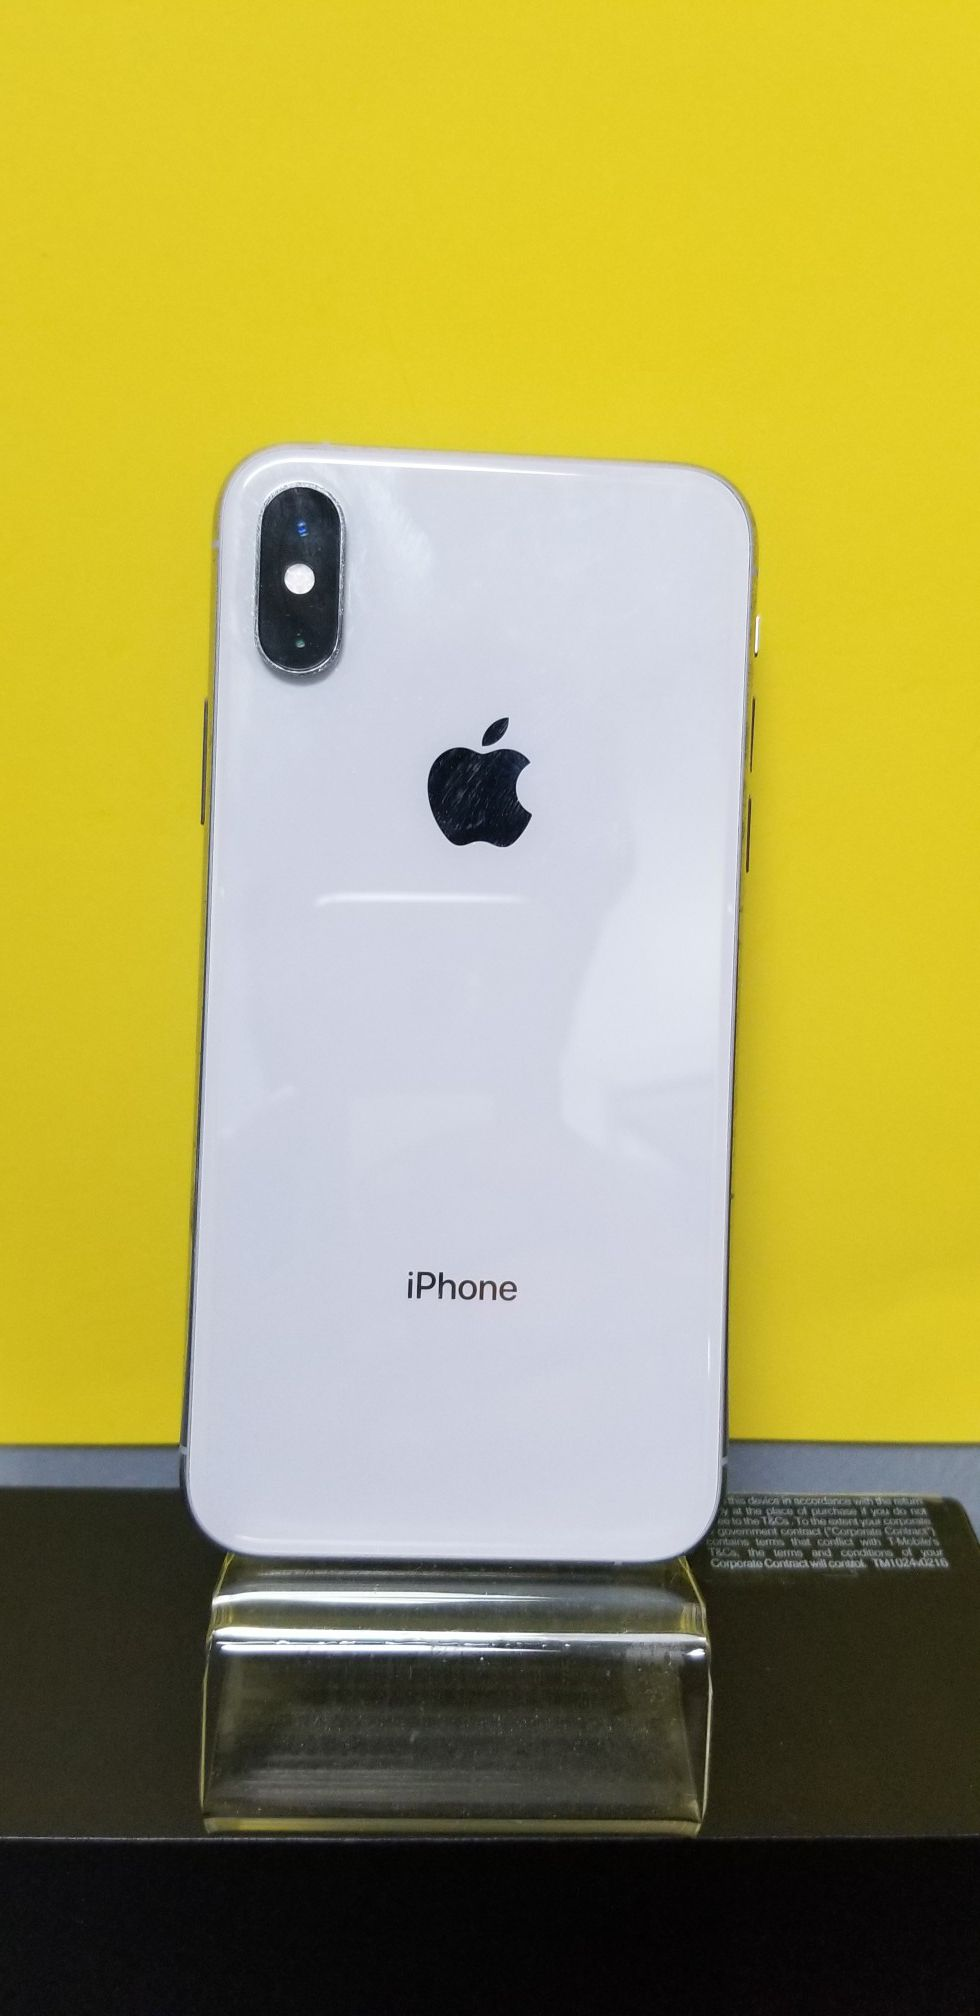 iPhone XS 64 GB Unlocked Financing available for 54 down,no credit needed take home today